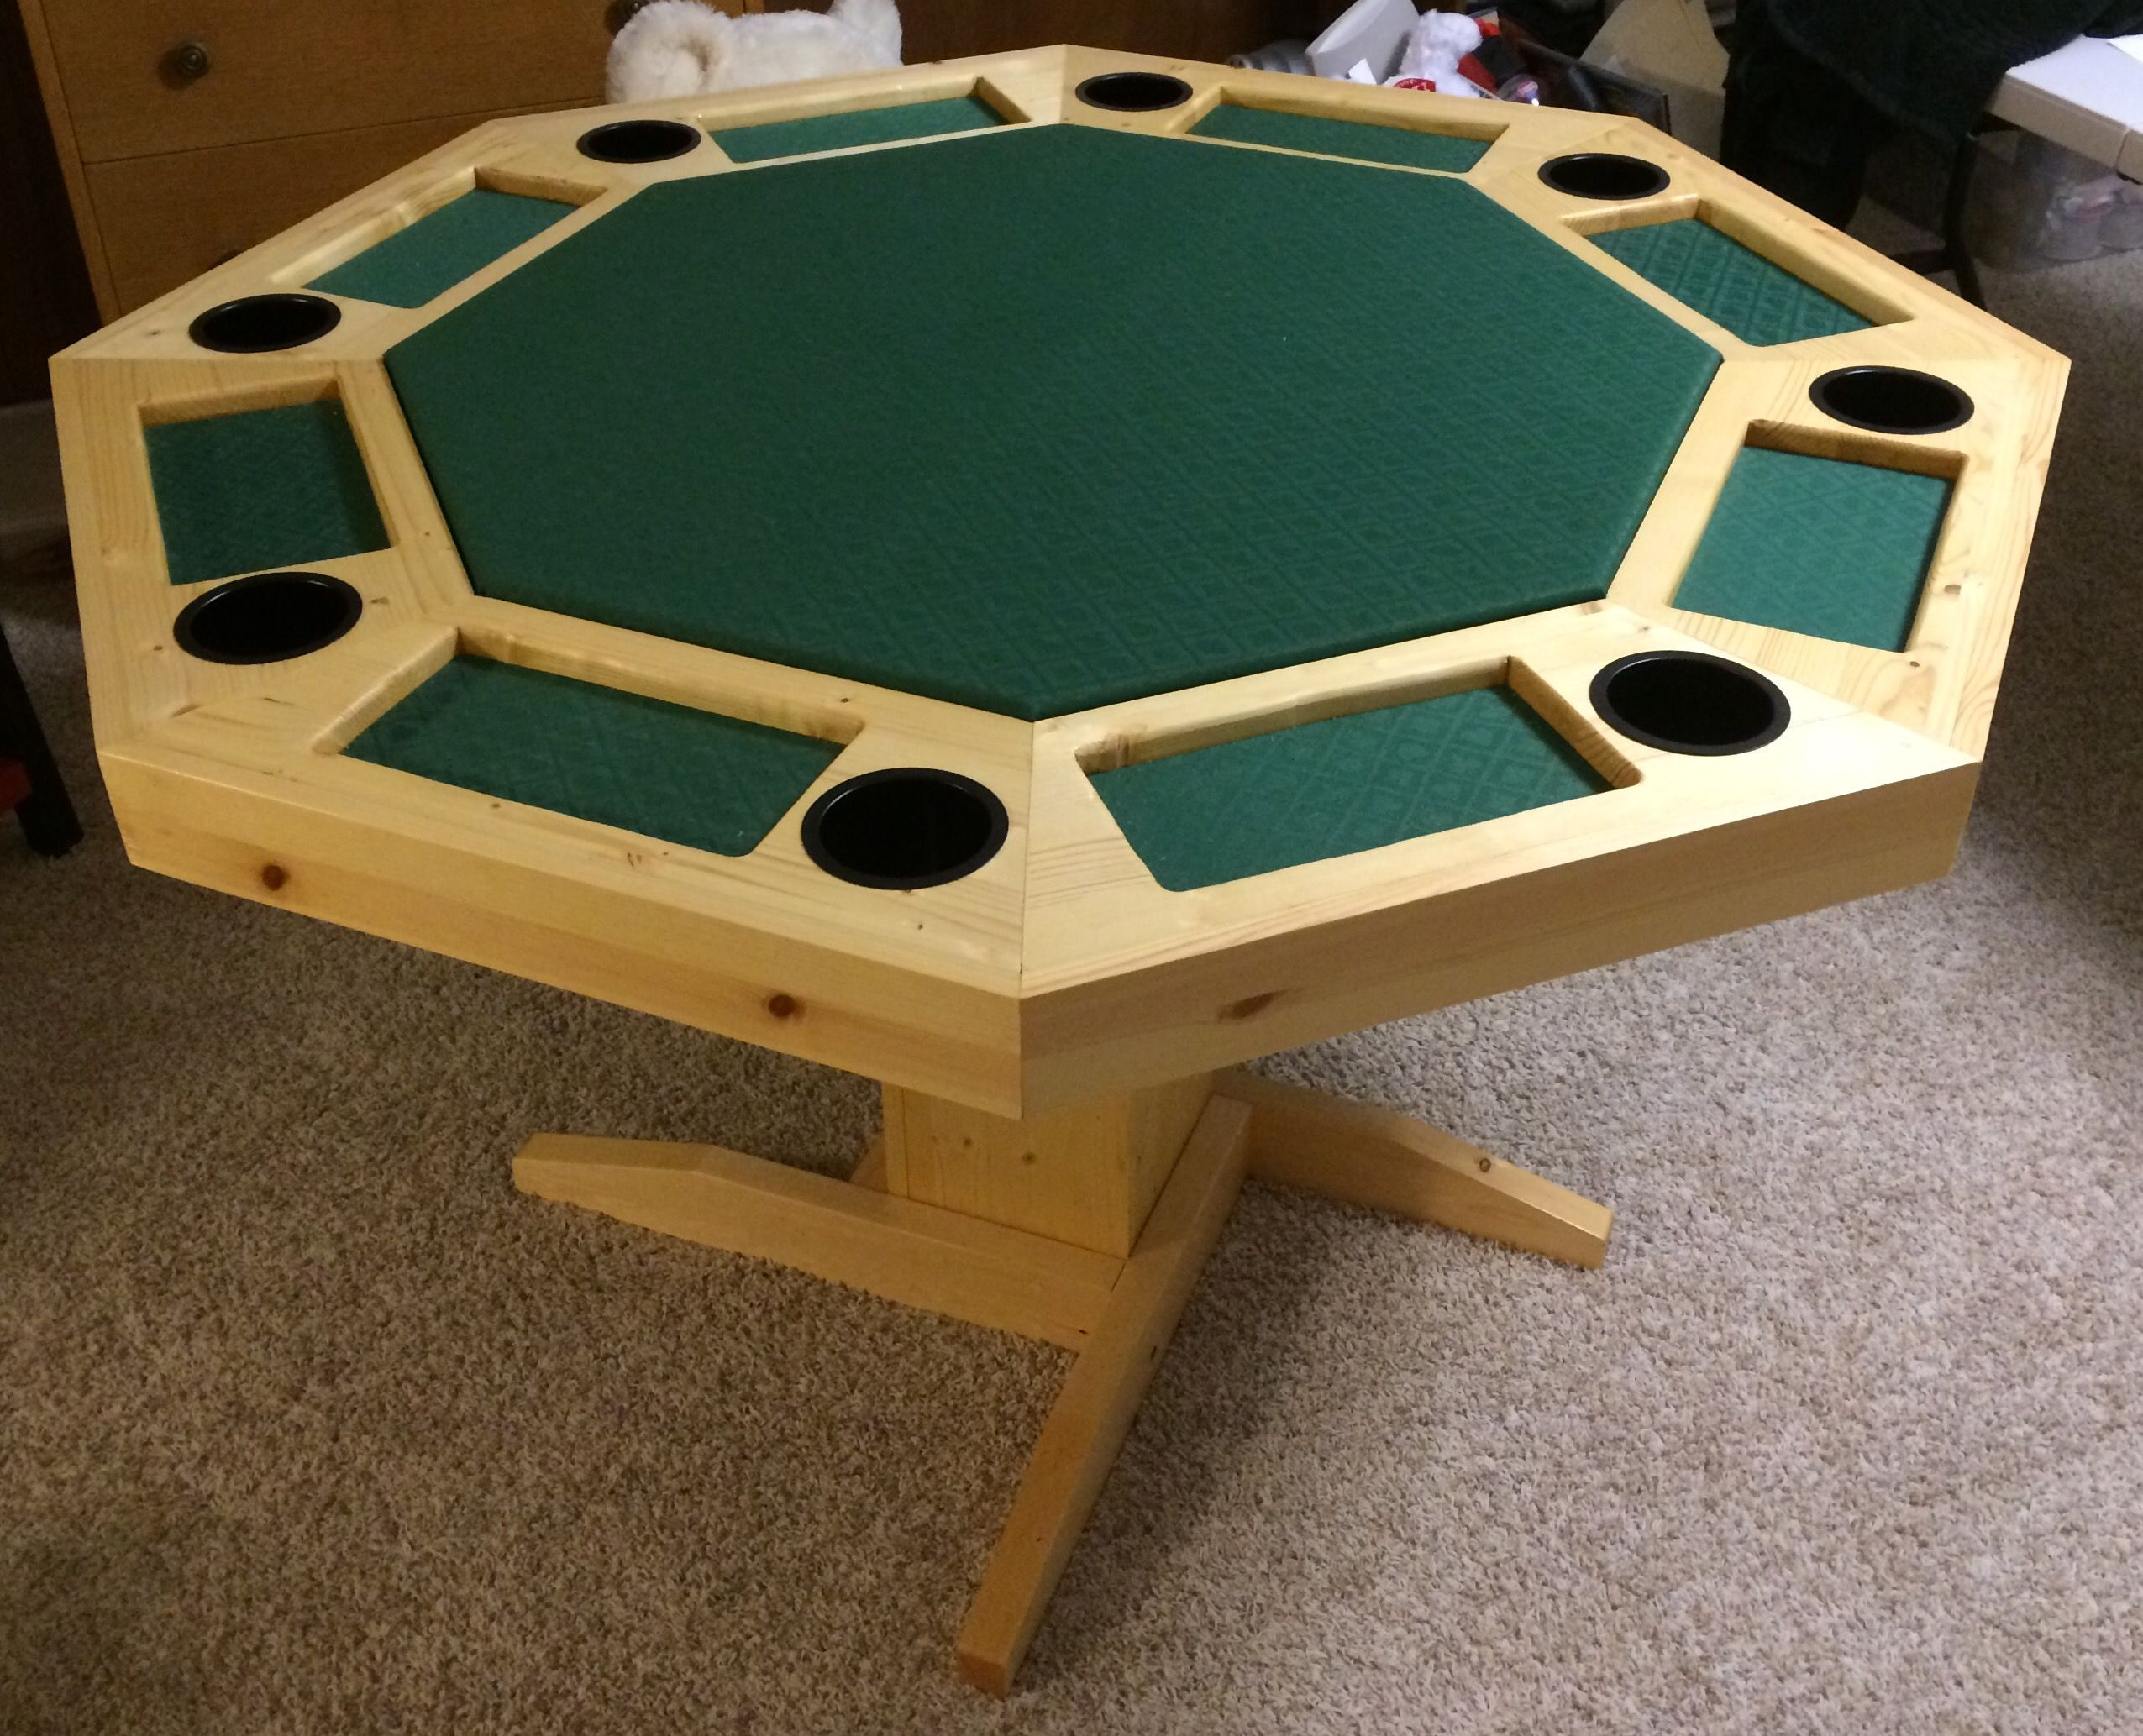 Octagonal Pine Poker Table Seats 8 People With Cupholders Poker Table Plans Octagon Poker Table Poker Table Diy